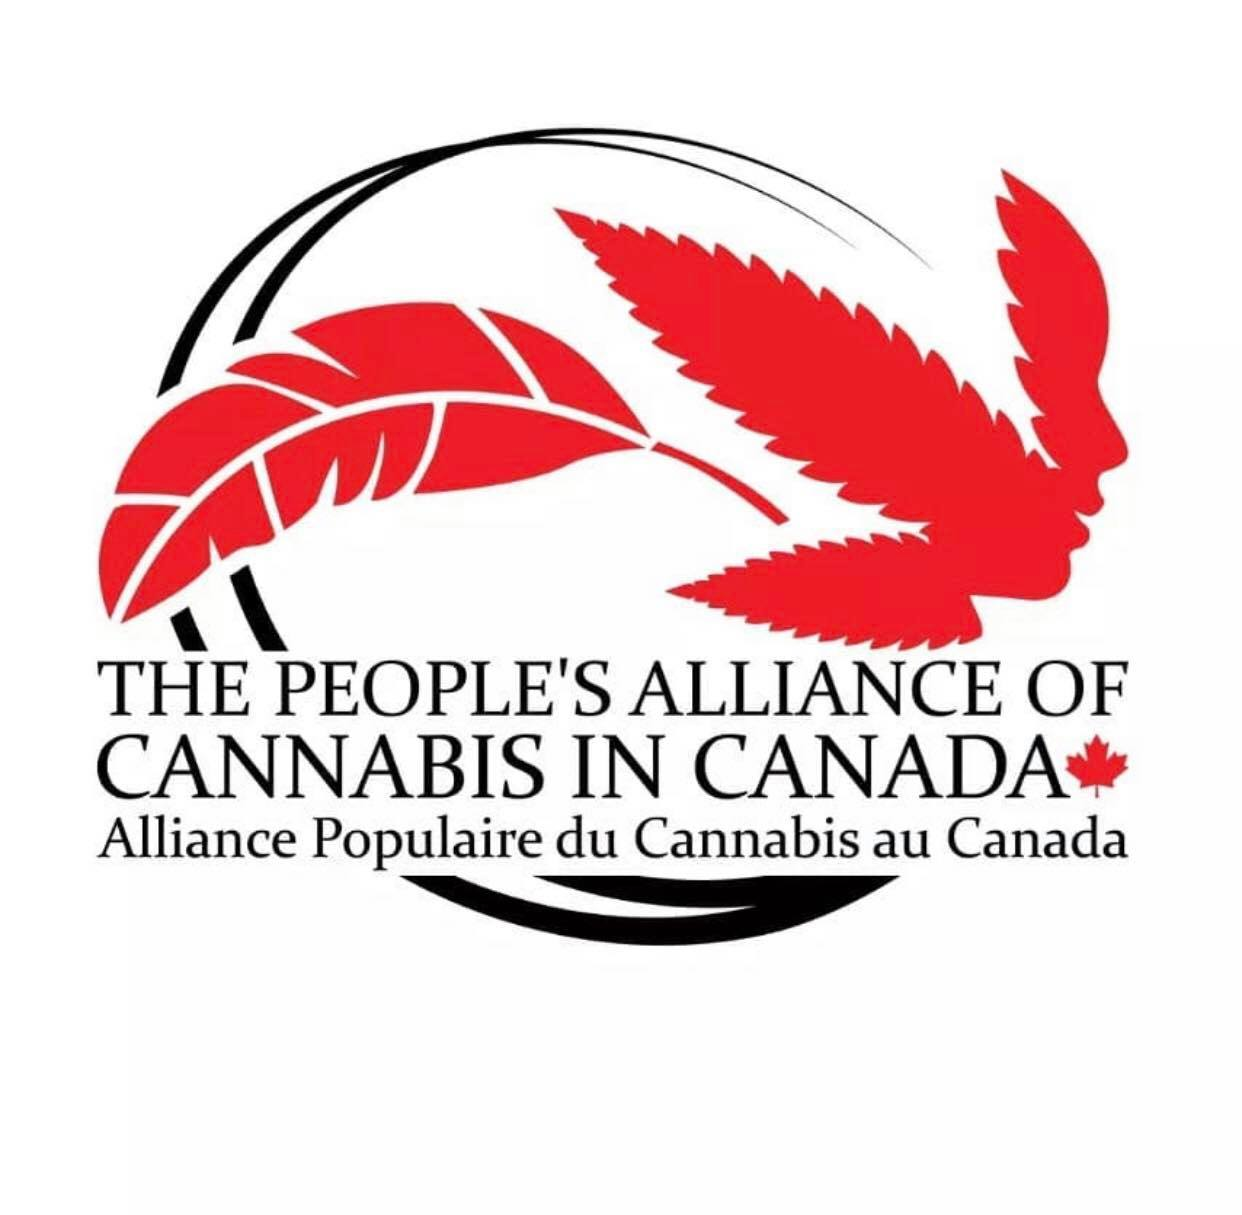 peoples alliance of cannabis in canada logo